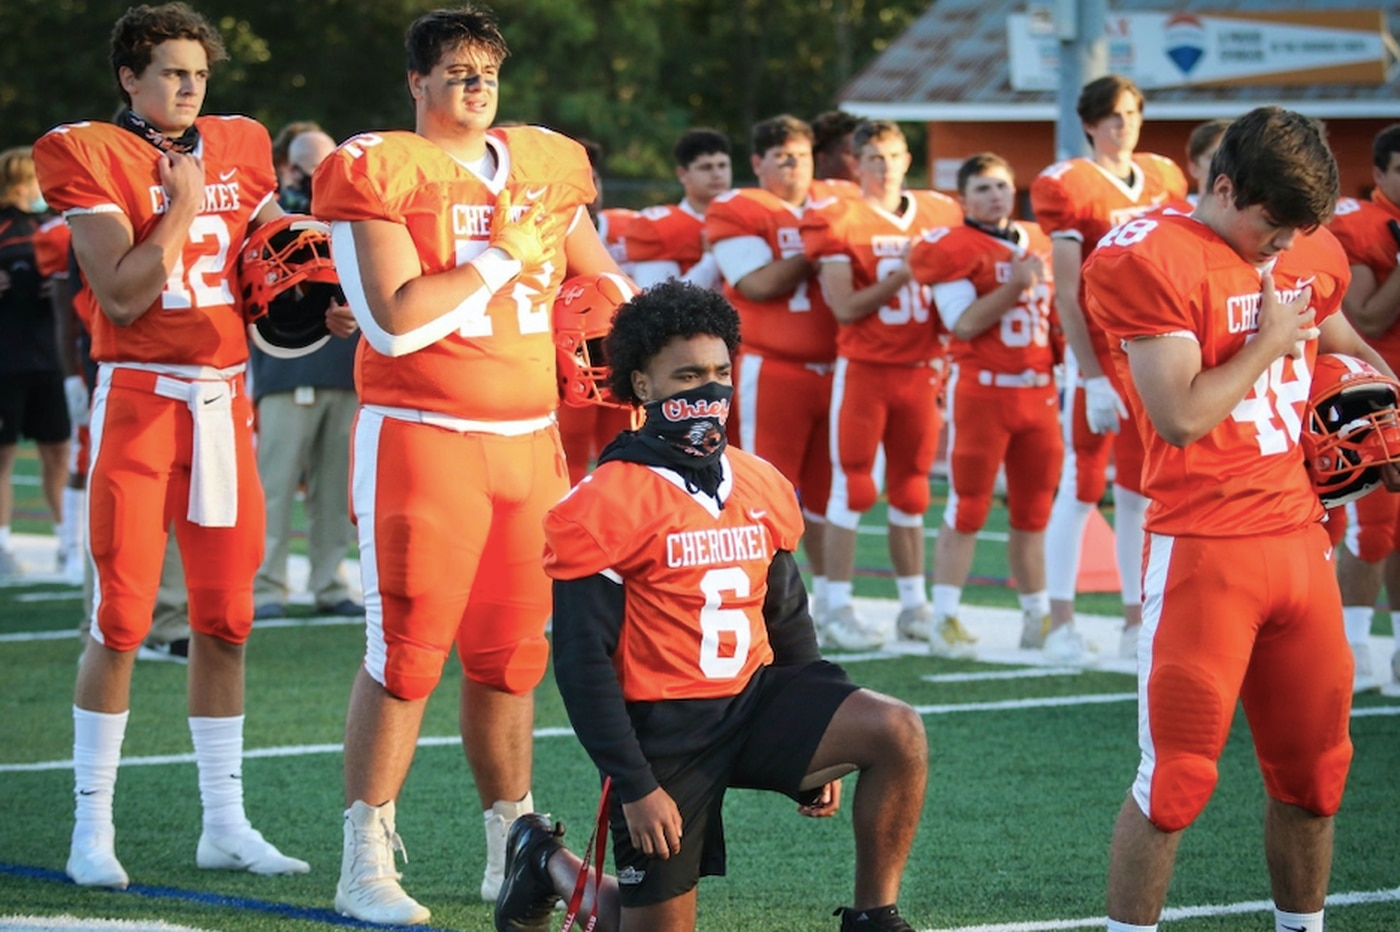 Cherokee football player kneels for national anthem to protest racial injustice